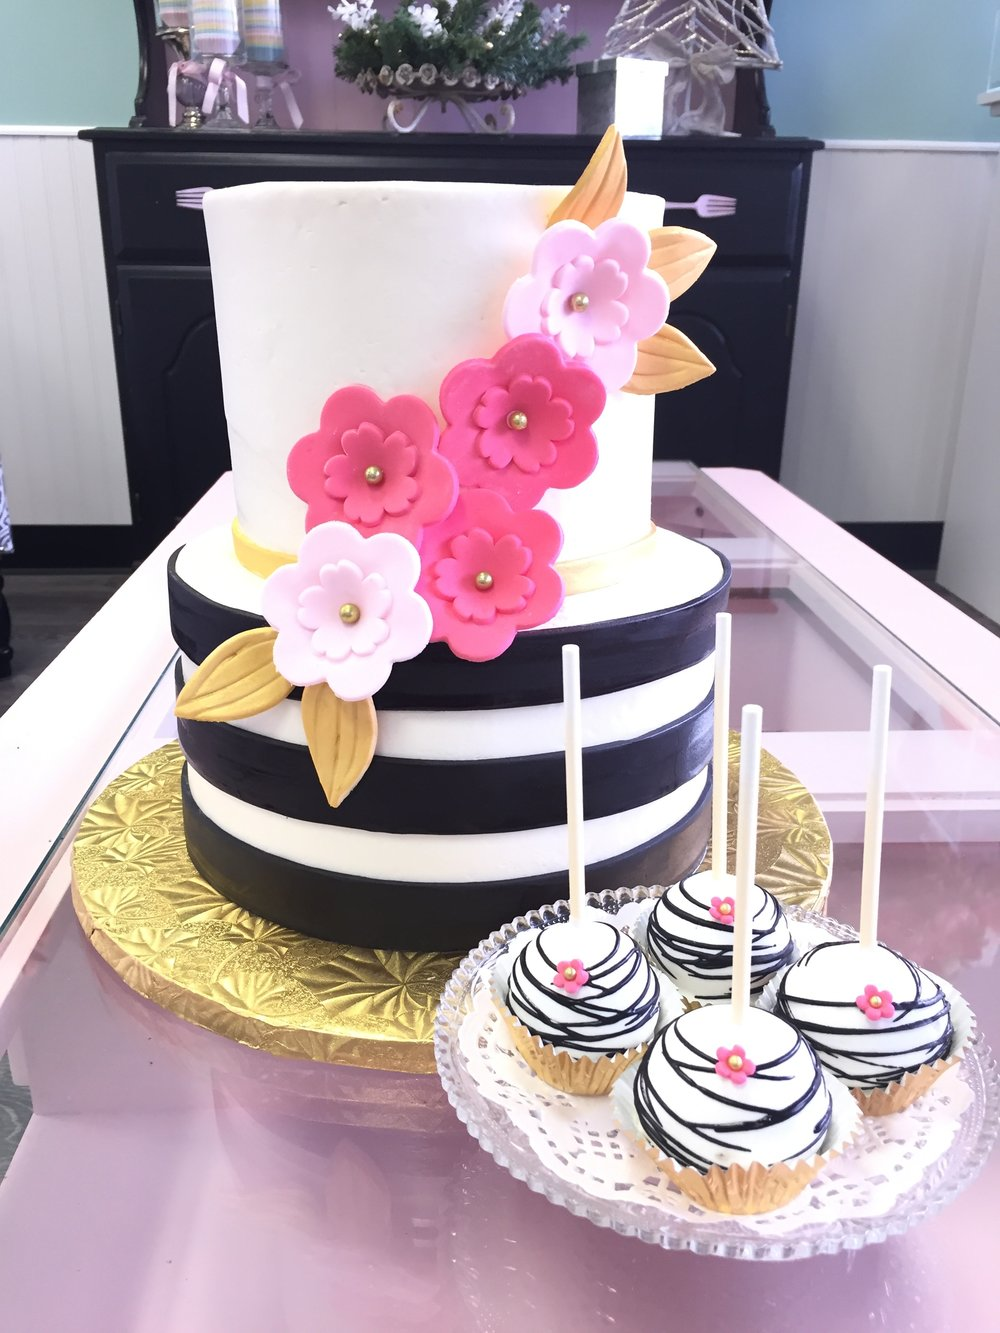 kate spade striped cake and black and white cake pops.jpeg